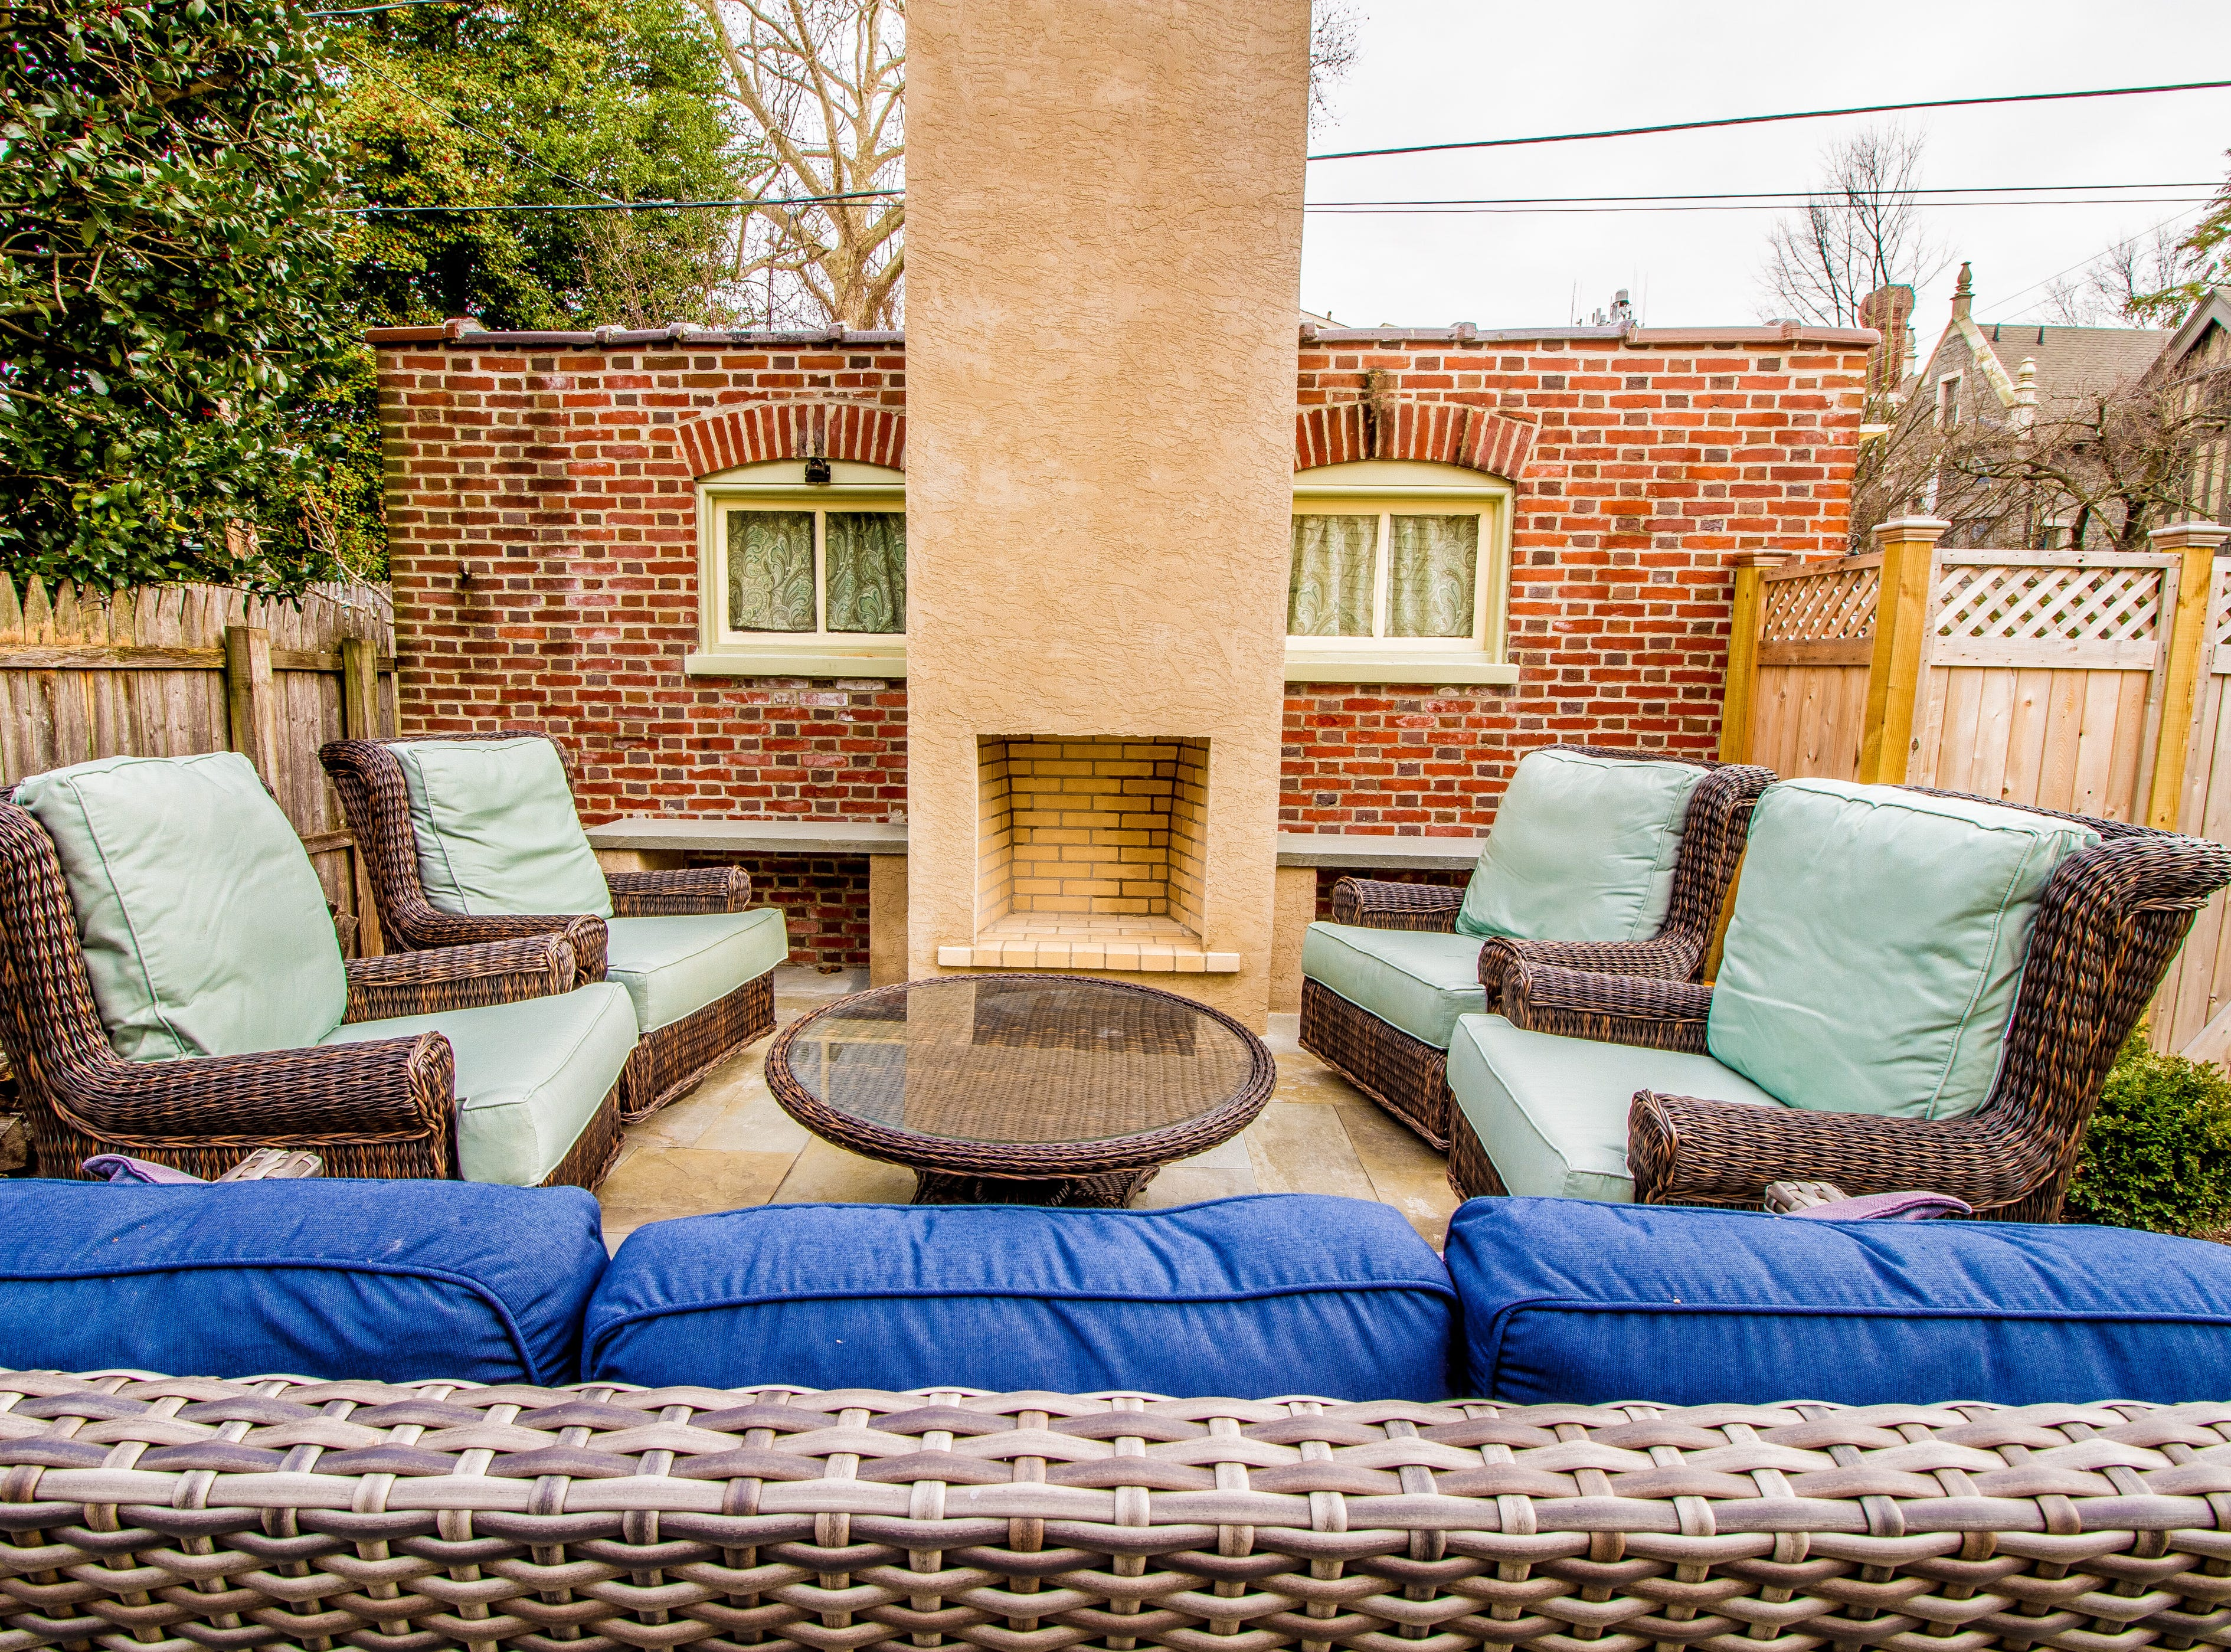 The backyard at the house at 1100 N. Rodney St. is fenced for privacy and has a fireplace and fountain.